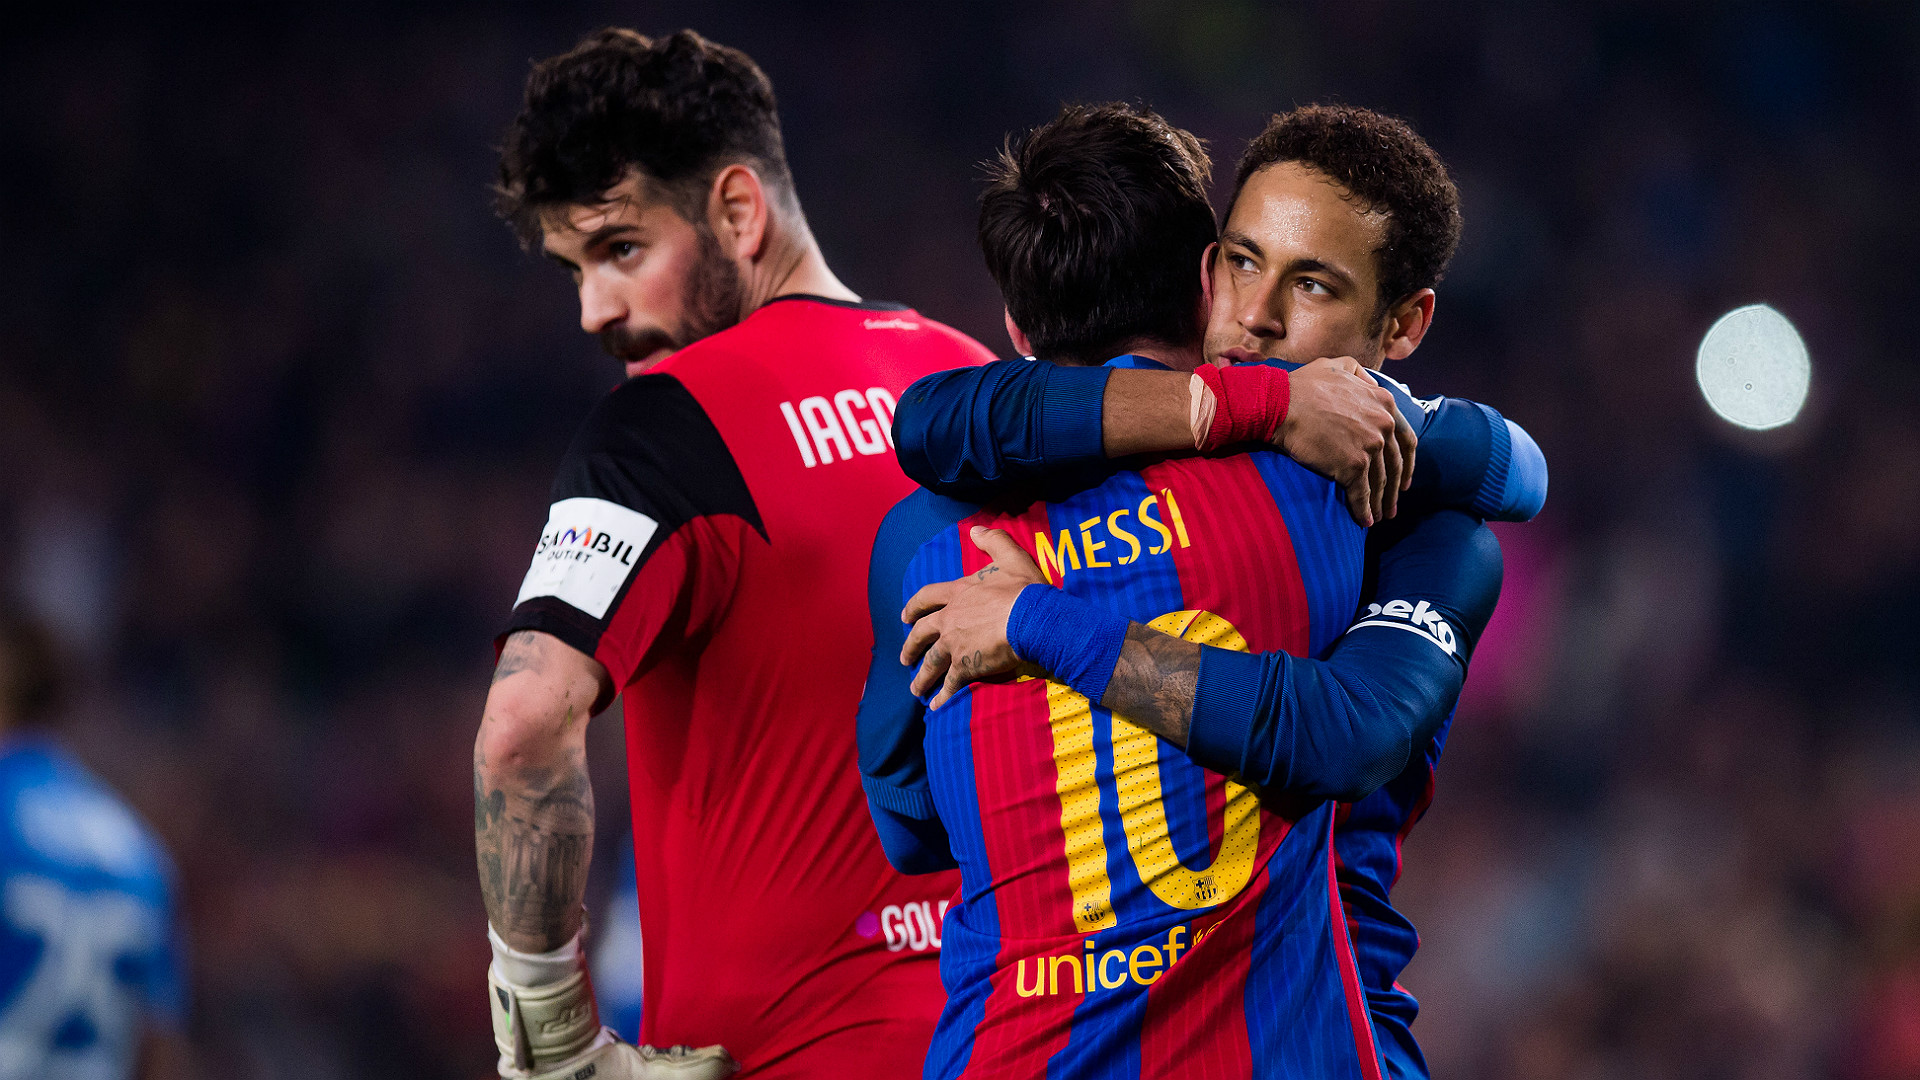 neymar and messi relationship goals